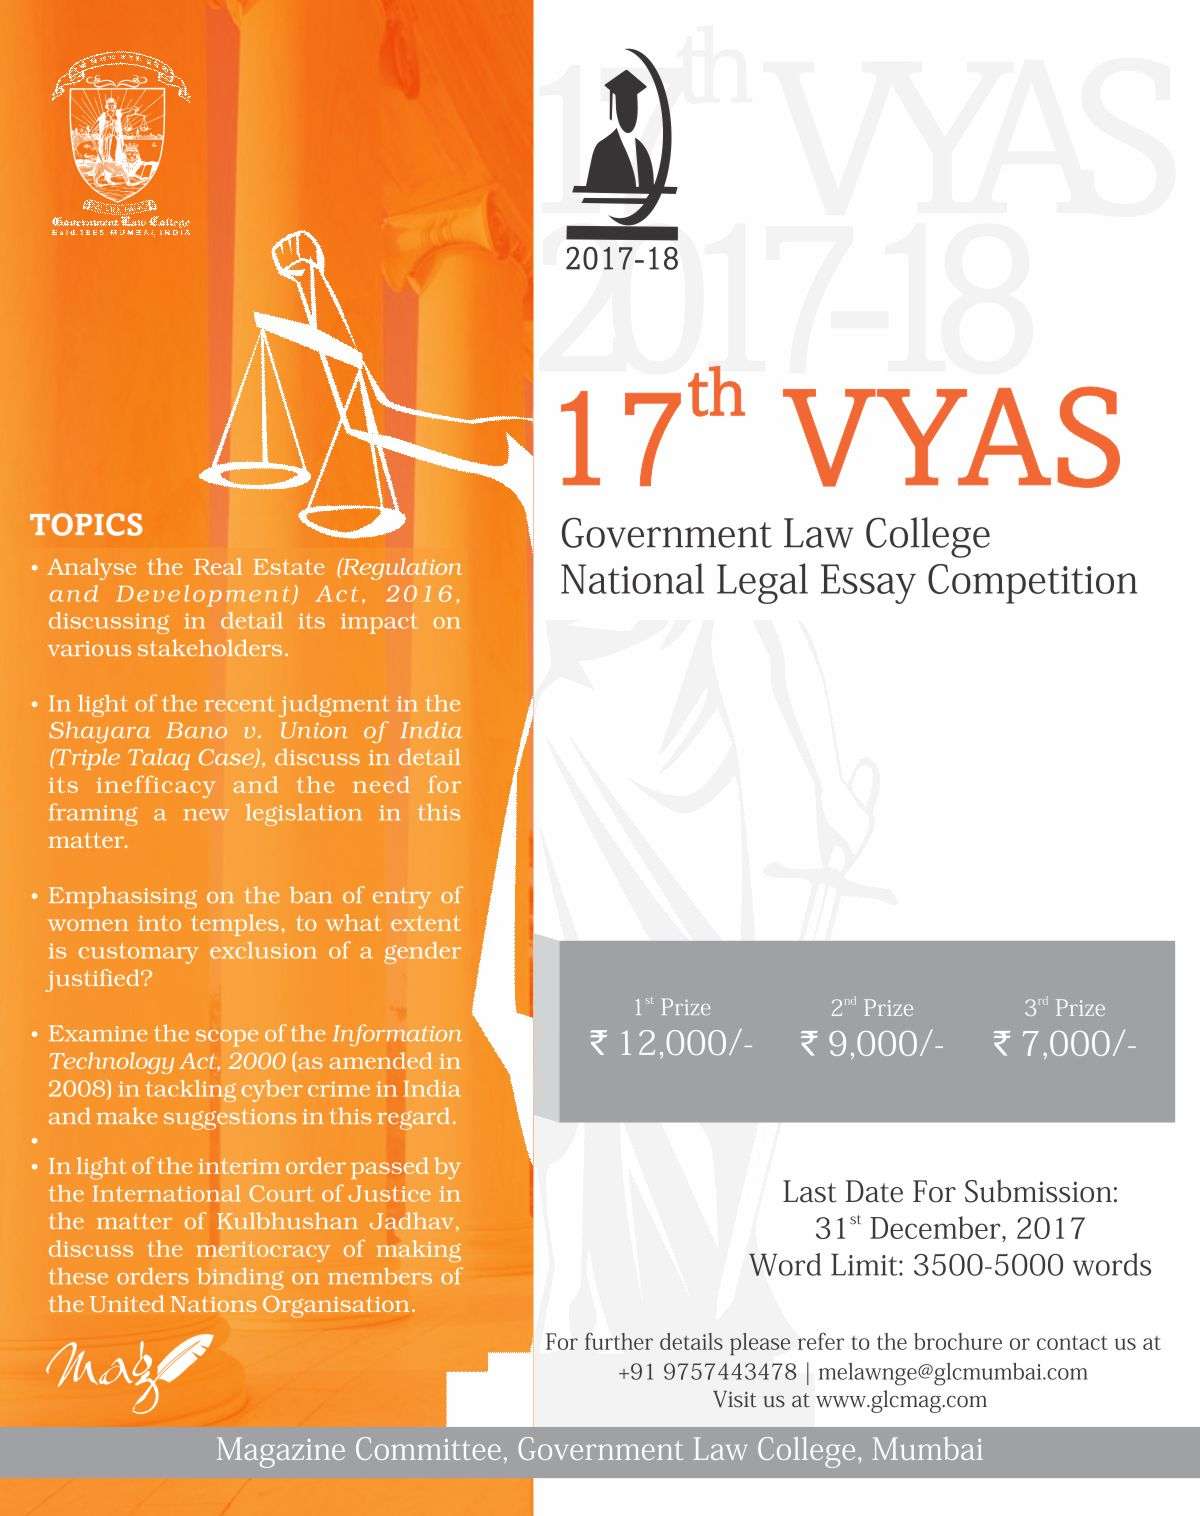 vyas – glc national legal essay writing competition 2012-13 15th vyas government law college national legal essay competition organized by glc mumbai the last date for submission is january 3rd, 2016.